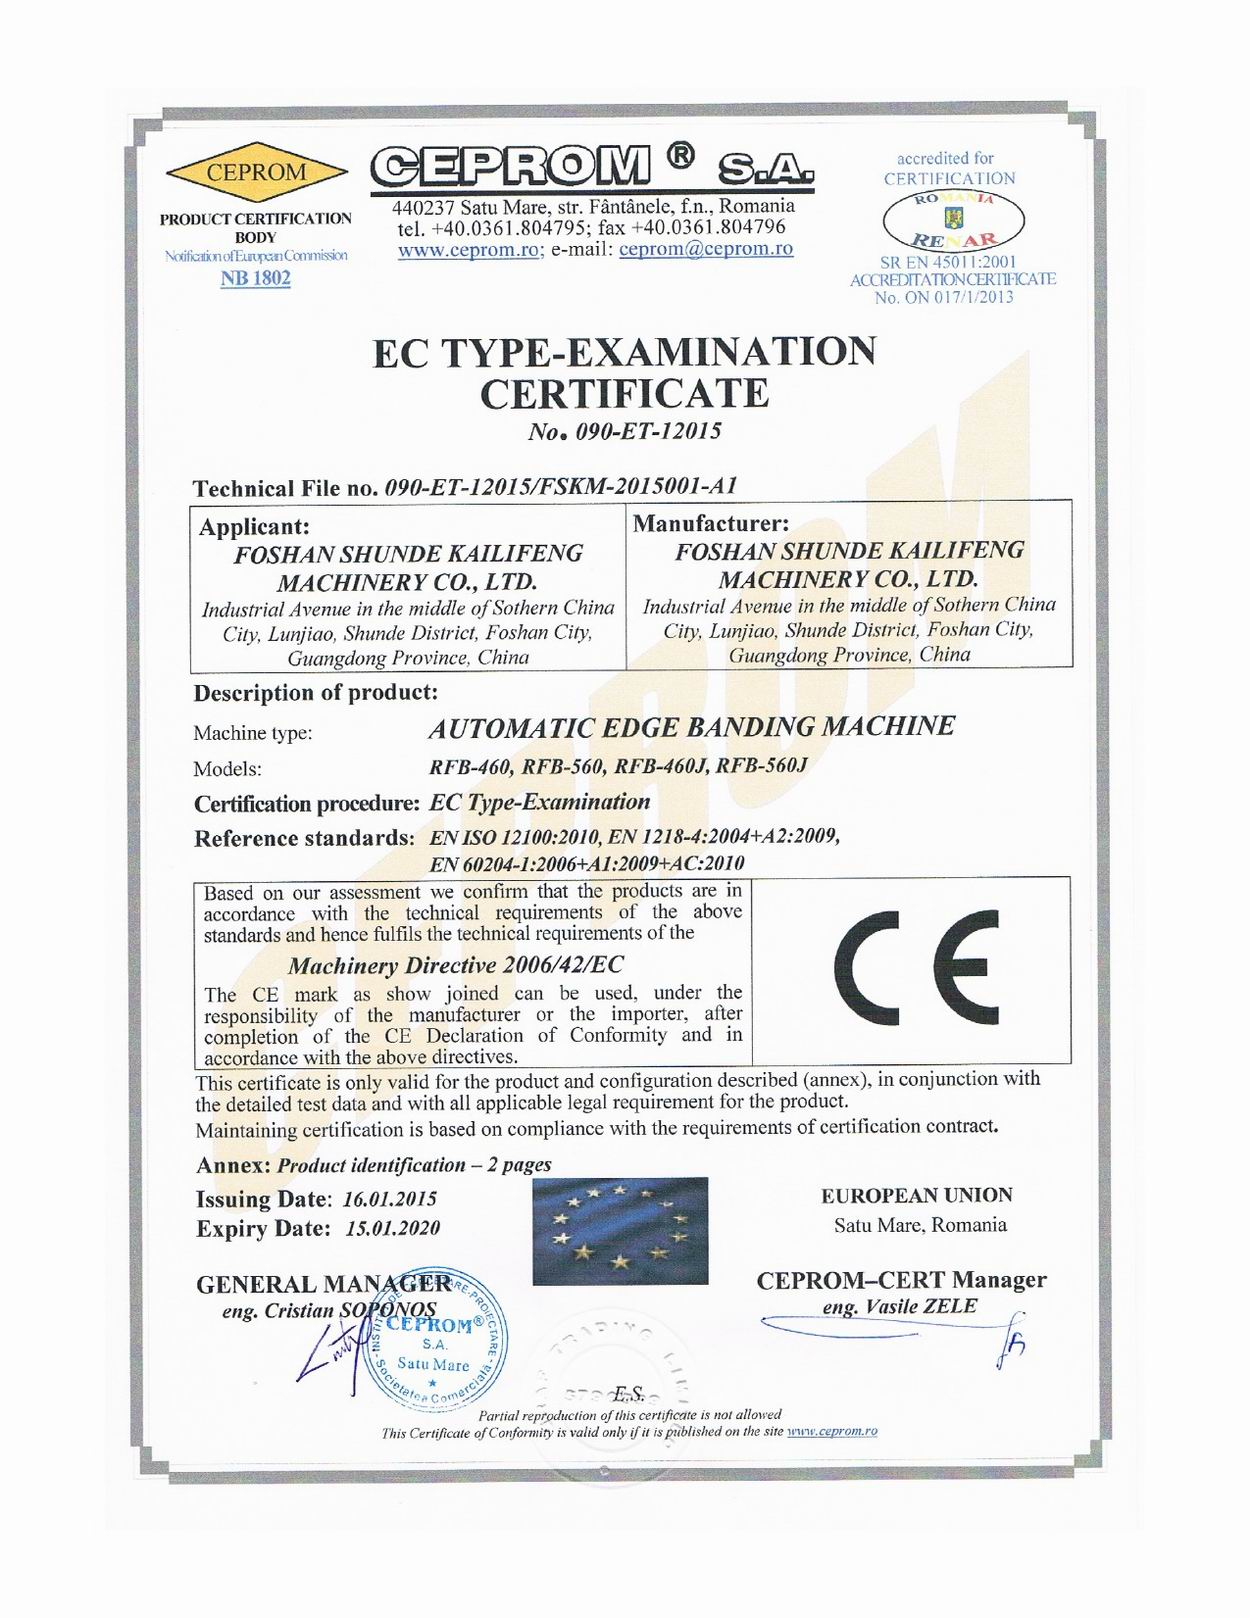 CE certificate for Automatic Edge Banding Machine